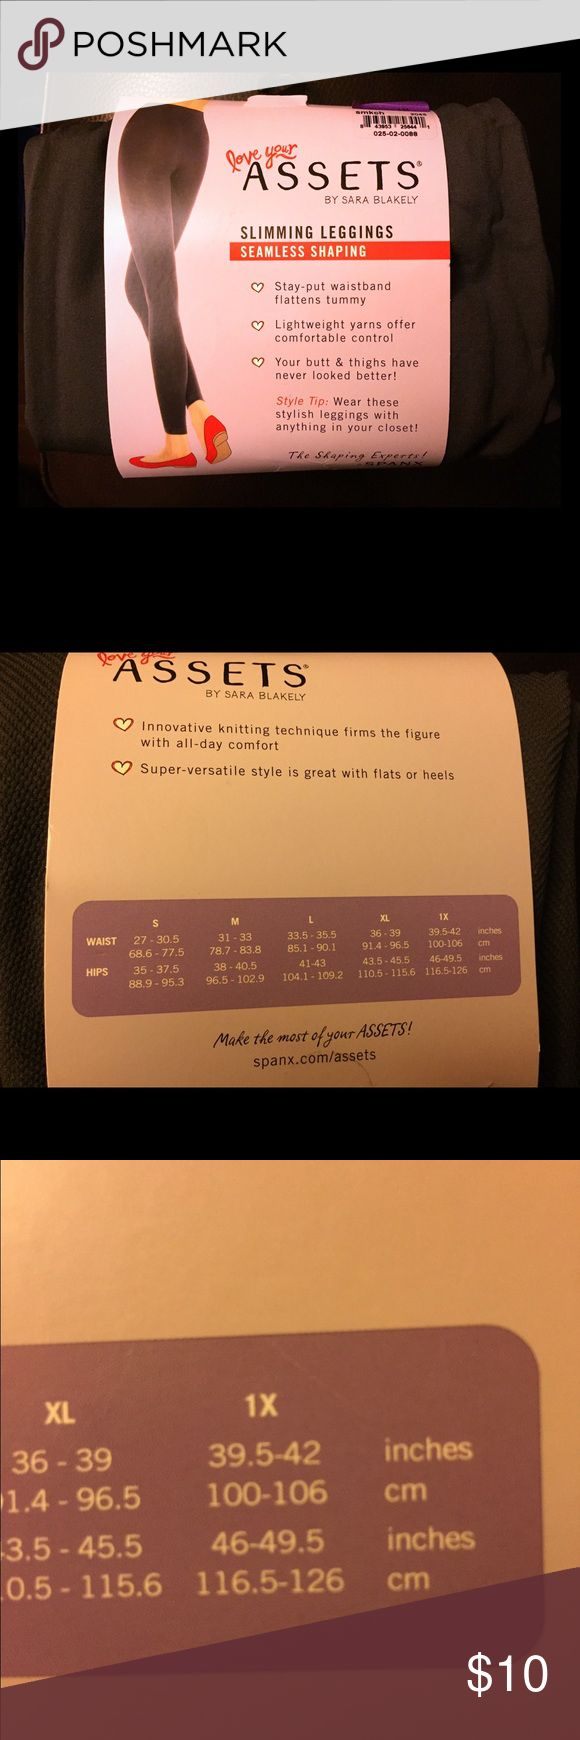 Love your assets SPANX!!! NWT 🌟🌟🌟 NWT love your Assets gray spanx that are leggings to give that smooth look!  Size XL... see chart size on last picture... used brand tag for exposure SPANX Accessories